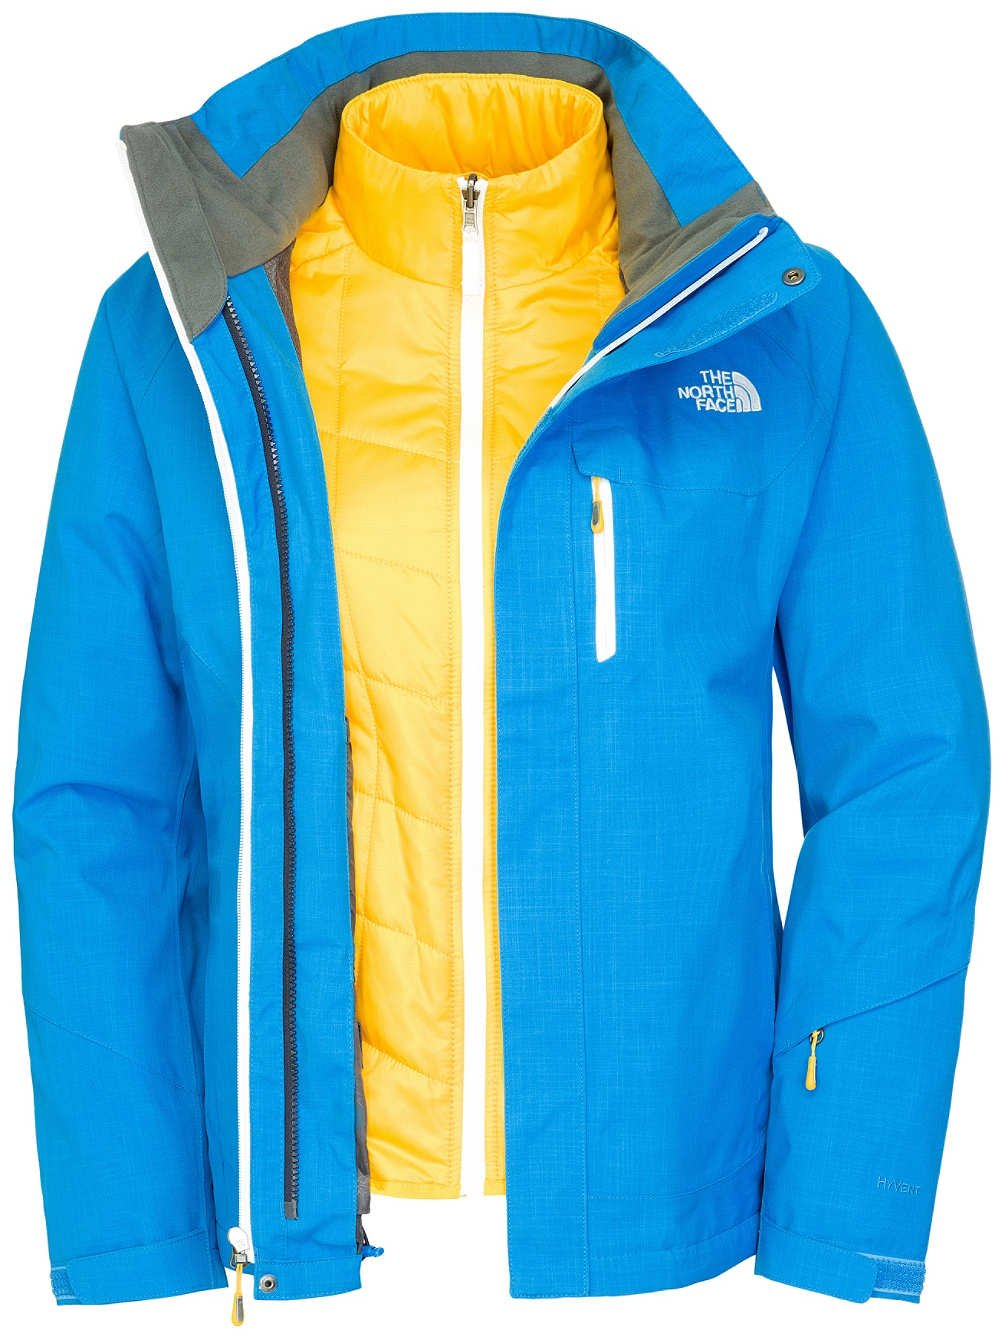 Damen Snowboard Jacke The North Face Cheakamus Triclimate Jacket günstig online kaufen